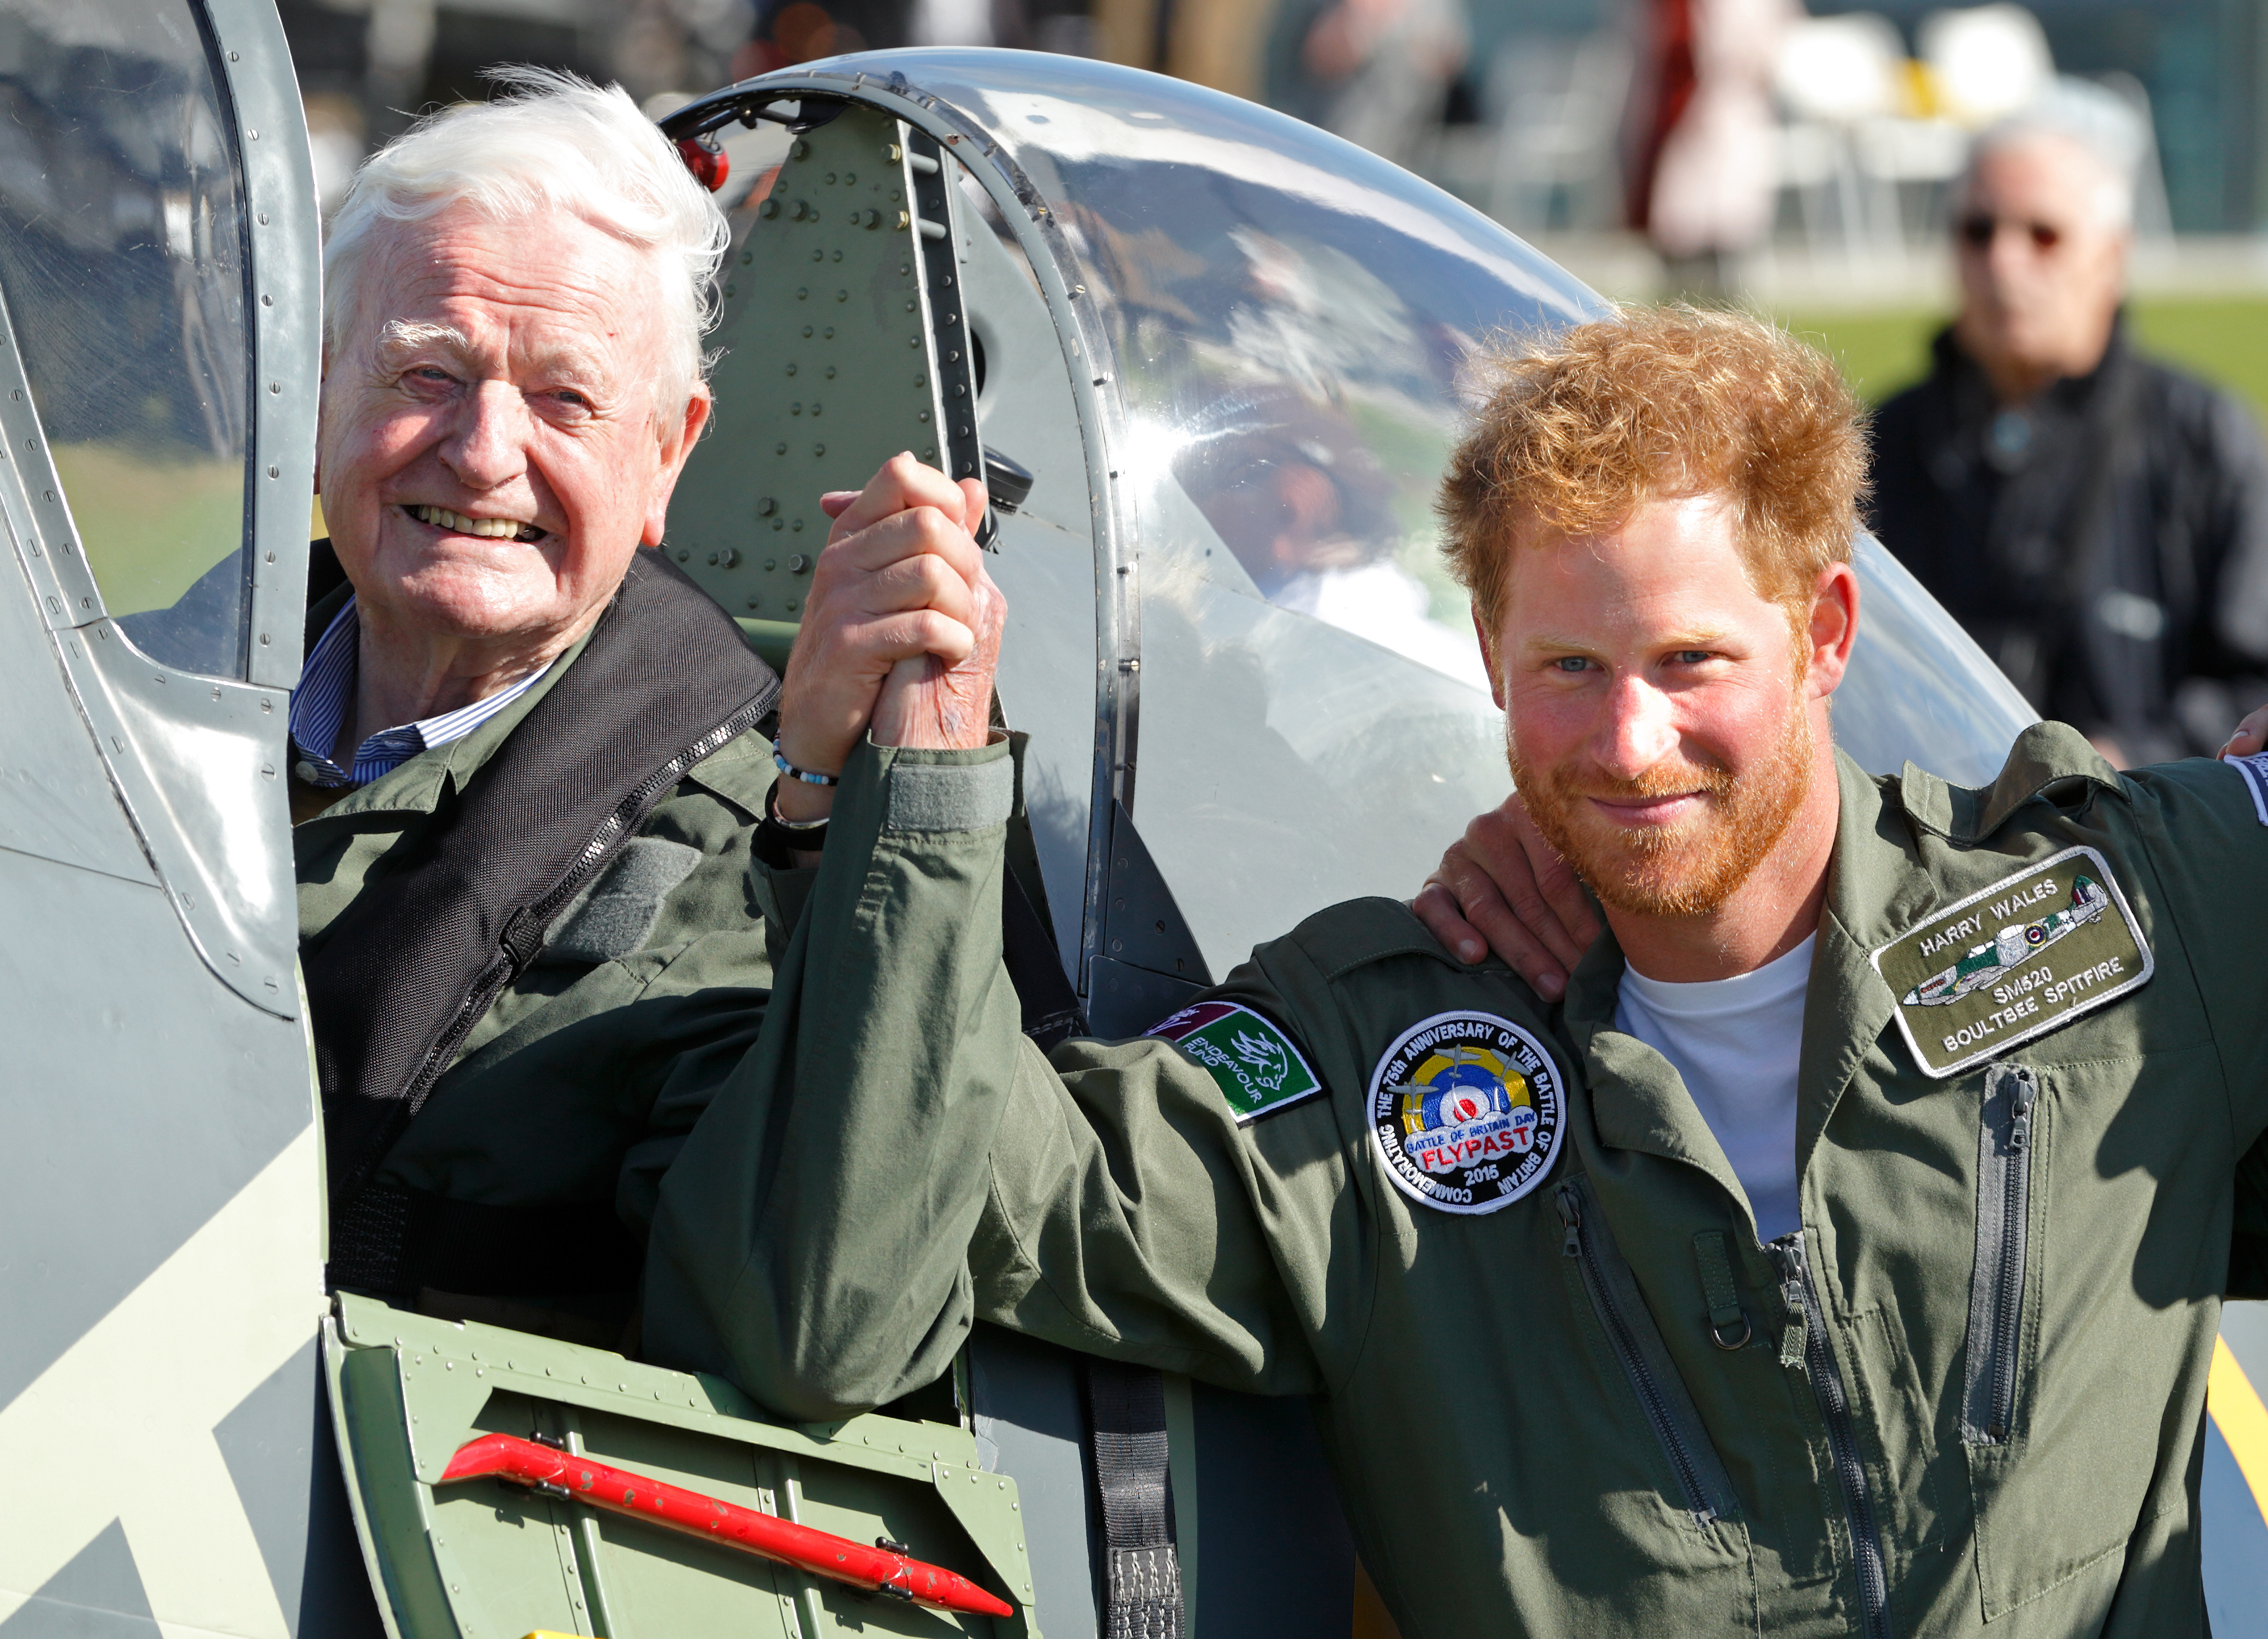 Prince Harry holds hands with 95-year-old Battle of Britain veteran Tom Neil after he landed back at Goodwood Aerodrome in his Spitfire aircraft following a Battle of Britain Flypast on Sept. 15, 2015, in Chichester, England